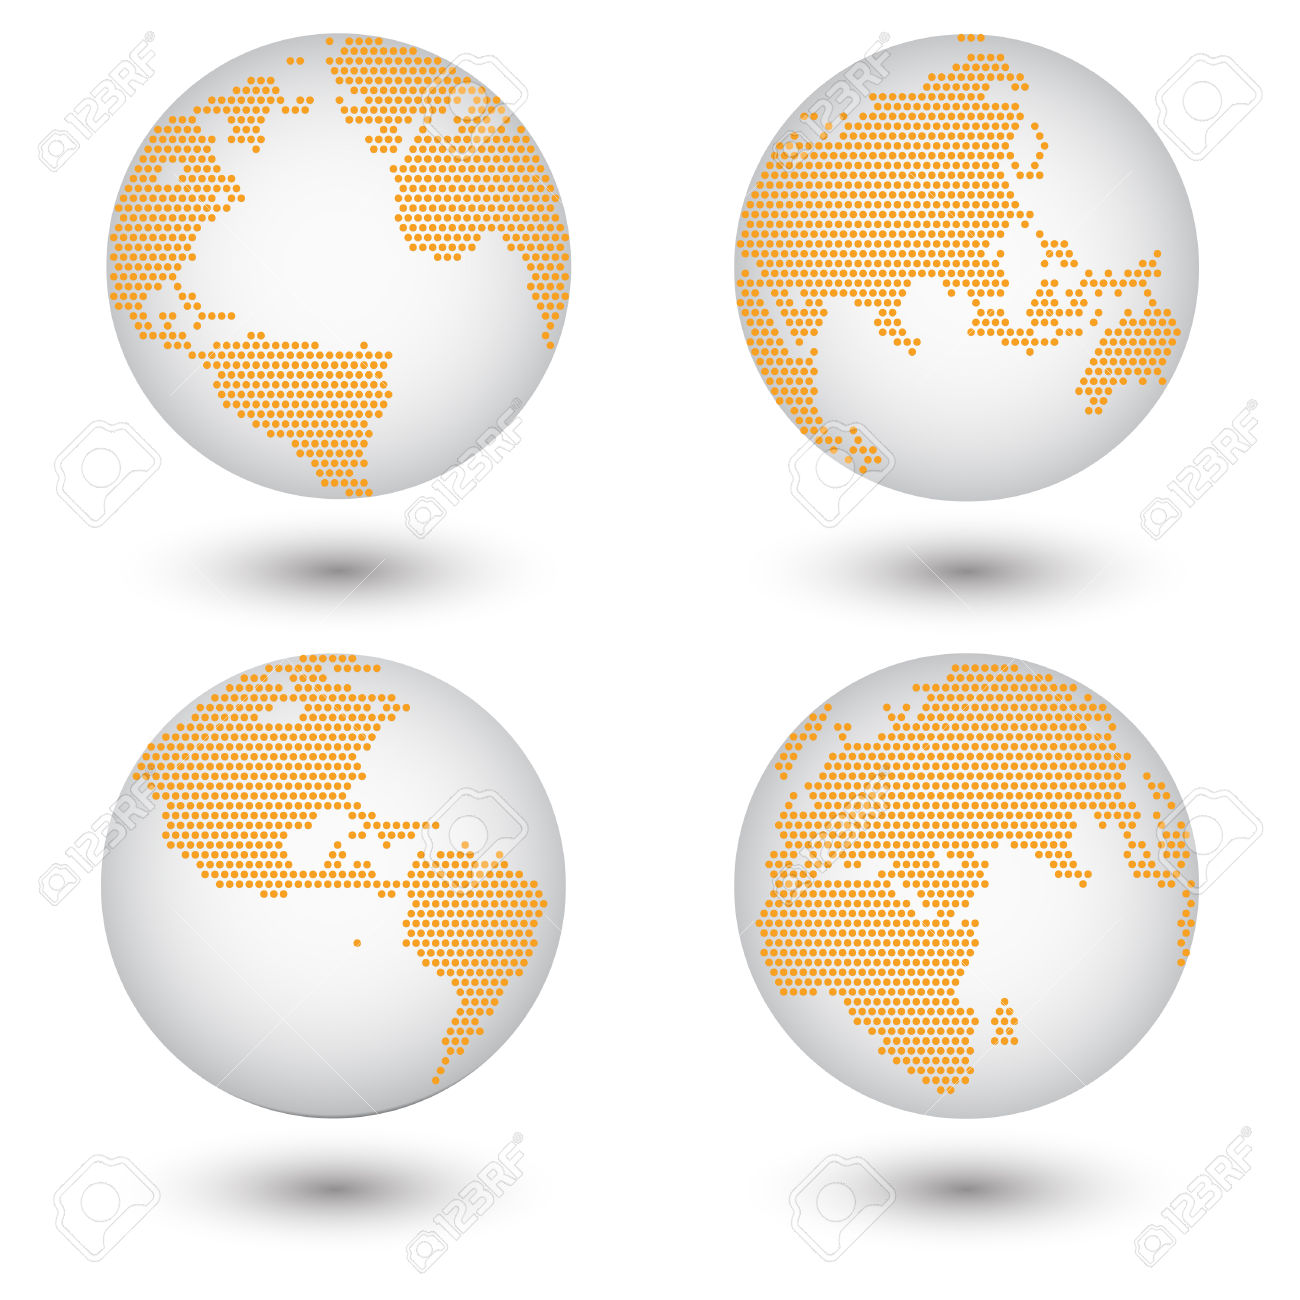 Circle map clipart clipground dotted world map globe made of circle shapes vector illustration gumiabroncs Image collections